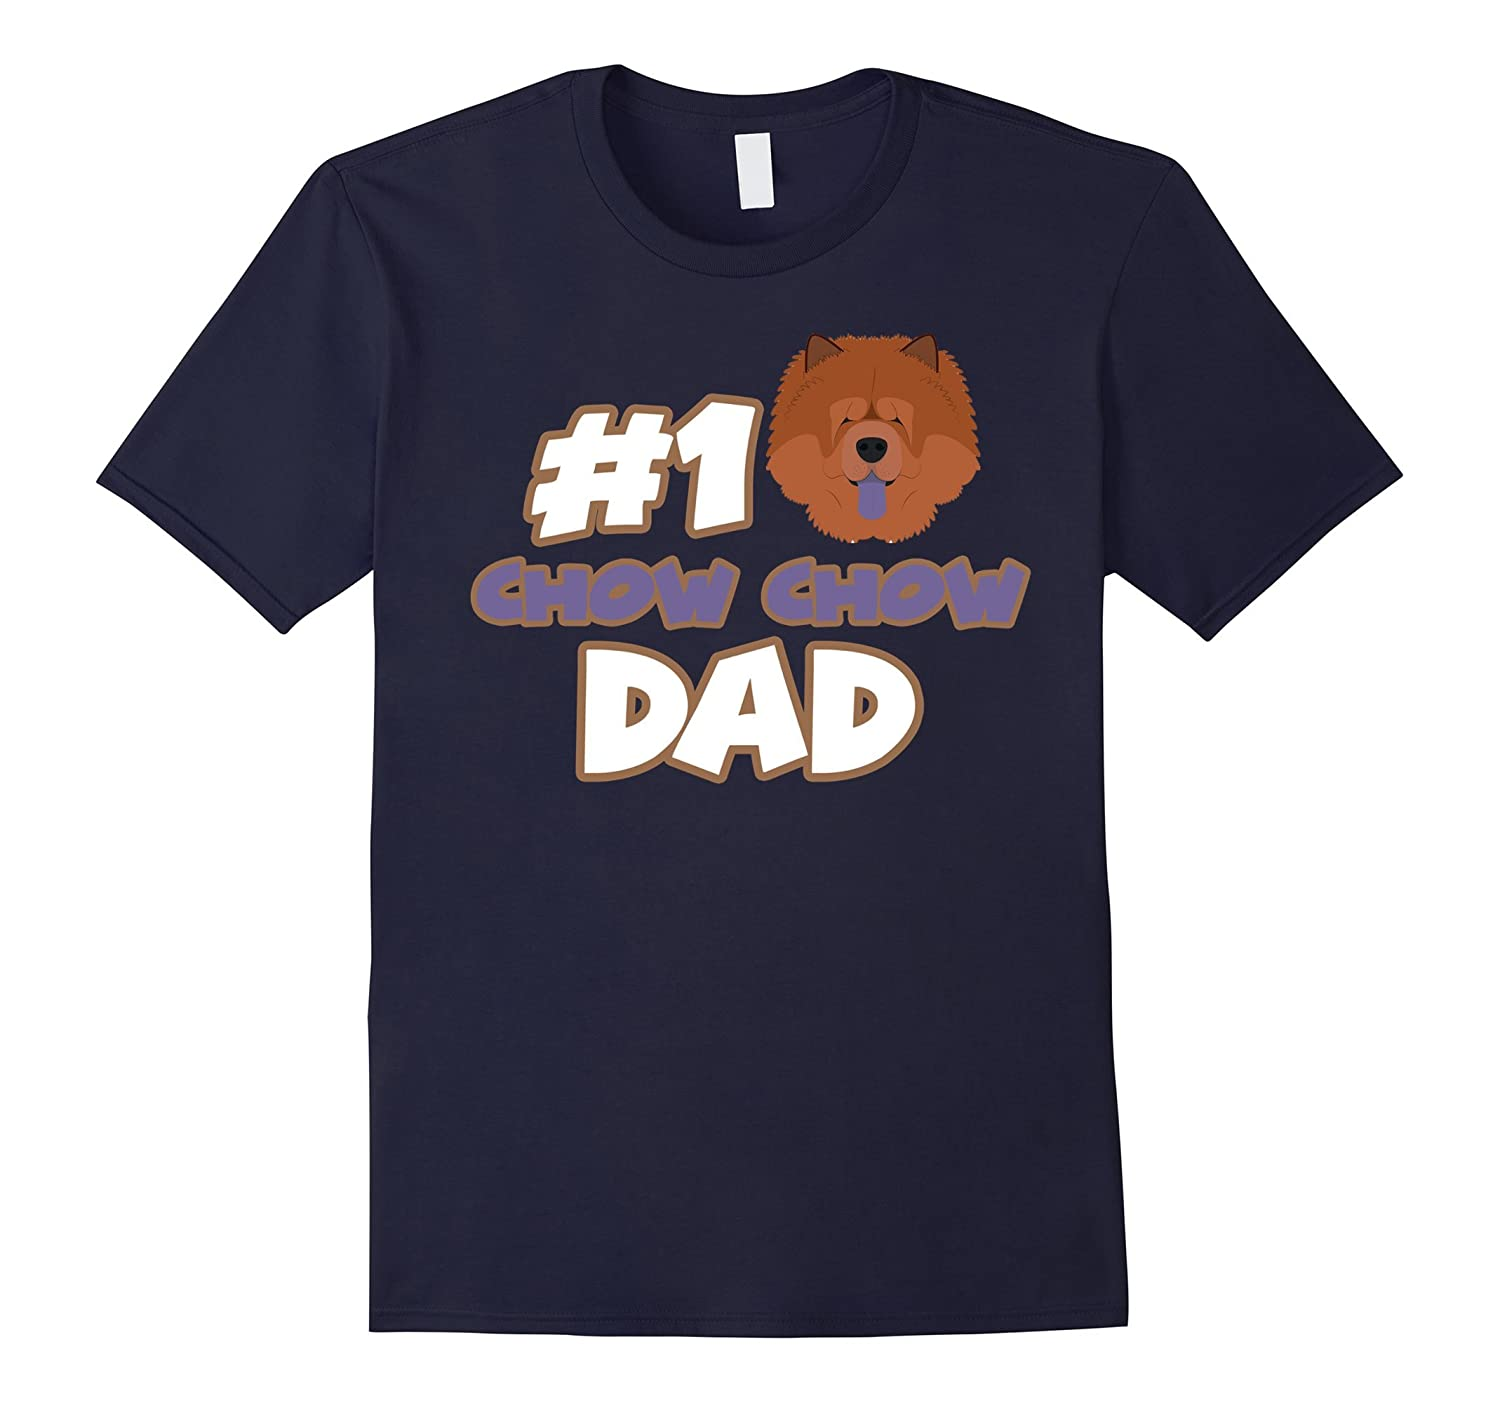 #1 Chow Chow Dad Funny Love Shirts-Art